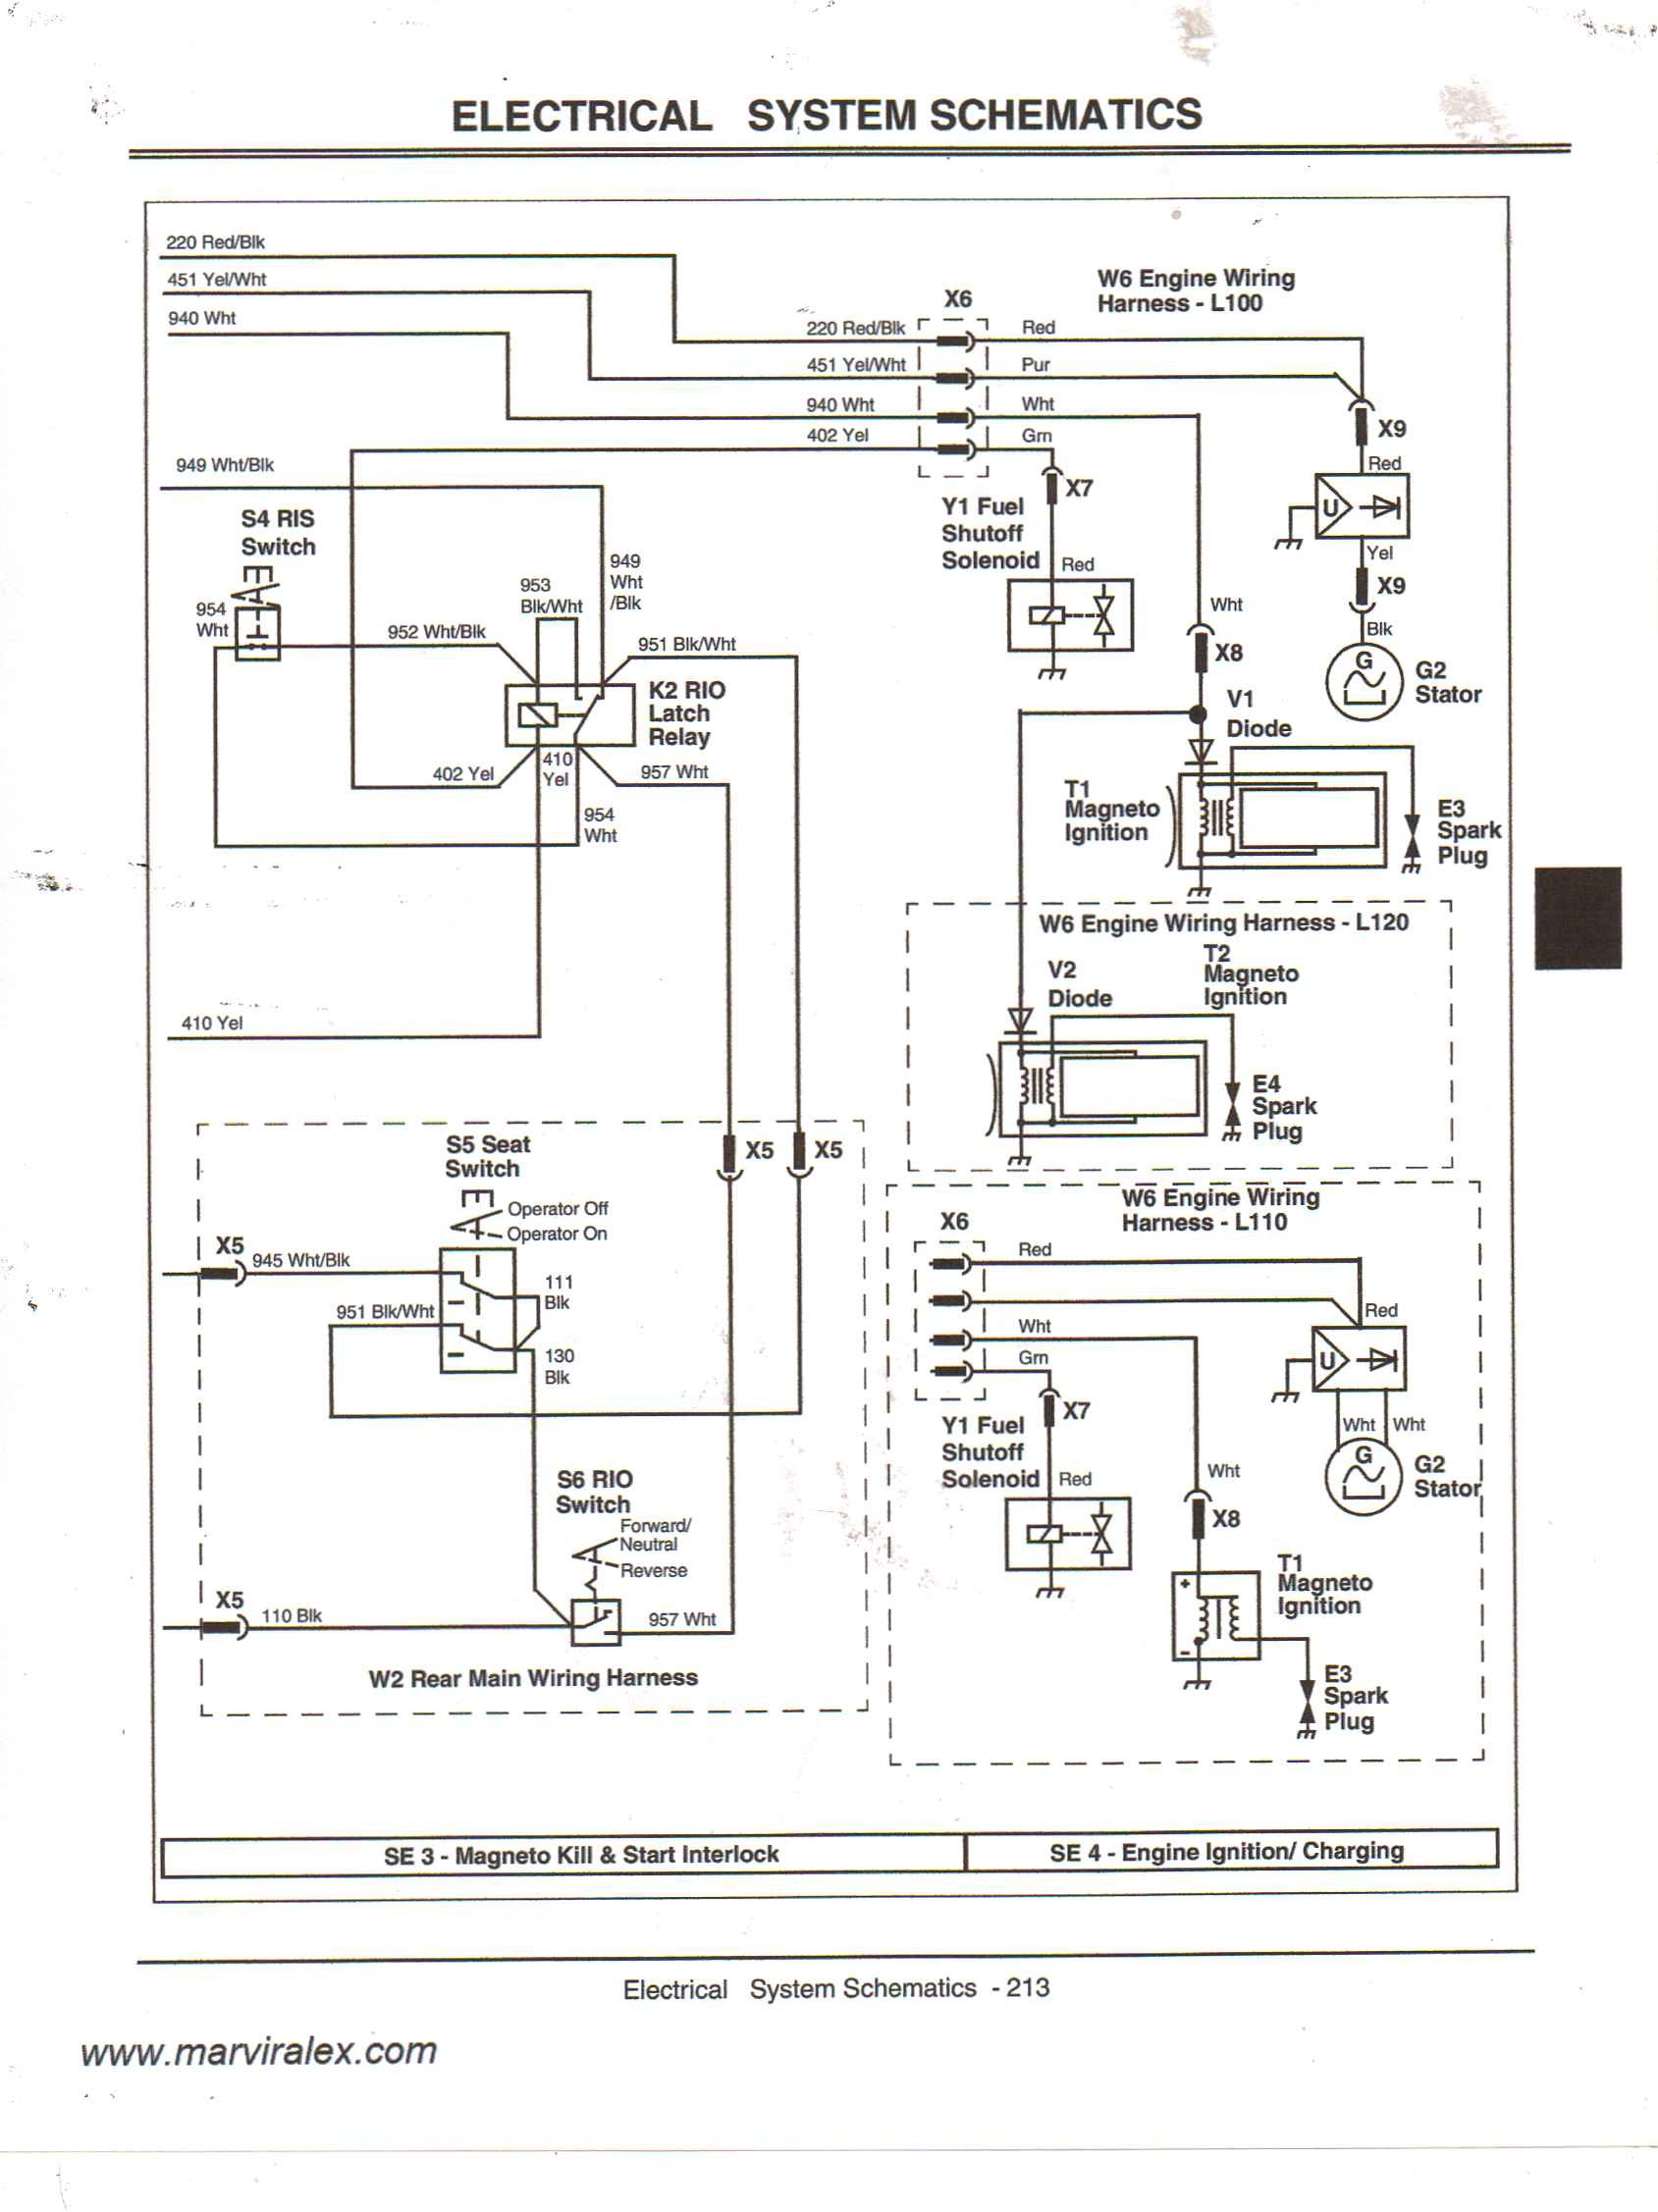 19.5 Horse Briggs Wiring Diagram I Need A Wiring Diagram for A Deere D110 Riding Mower Of 19.5 Horse Briggs Wiring Diagram